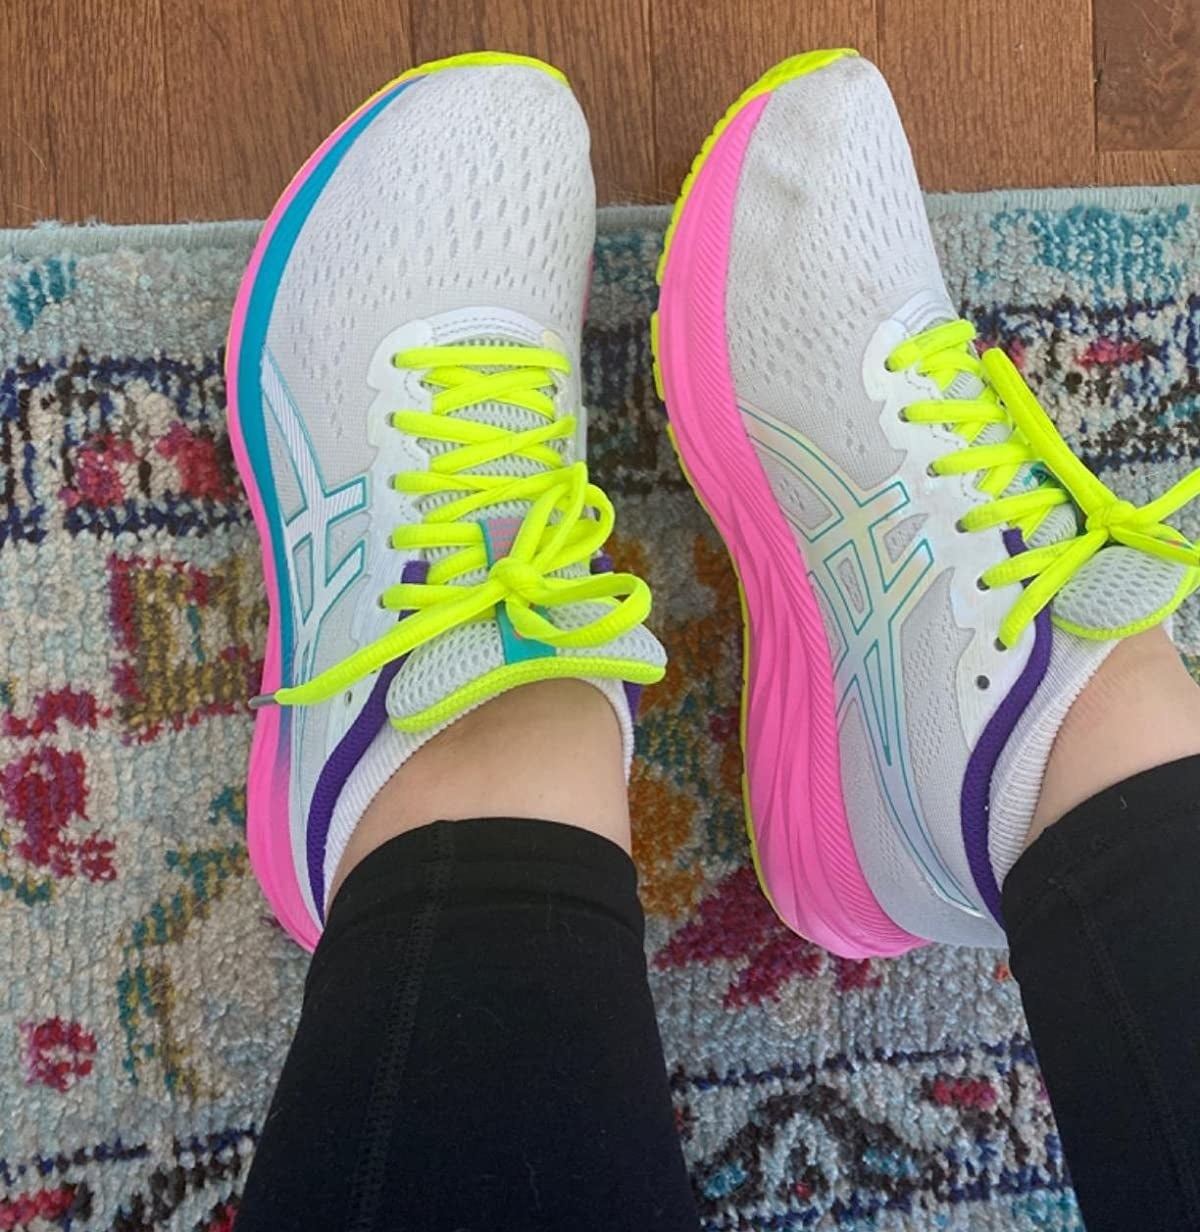 reviewer wearing white asics sneakers with fluorescent yellow laces and hot pink soles